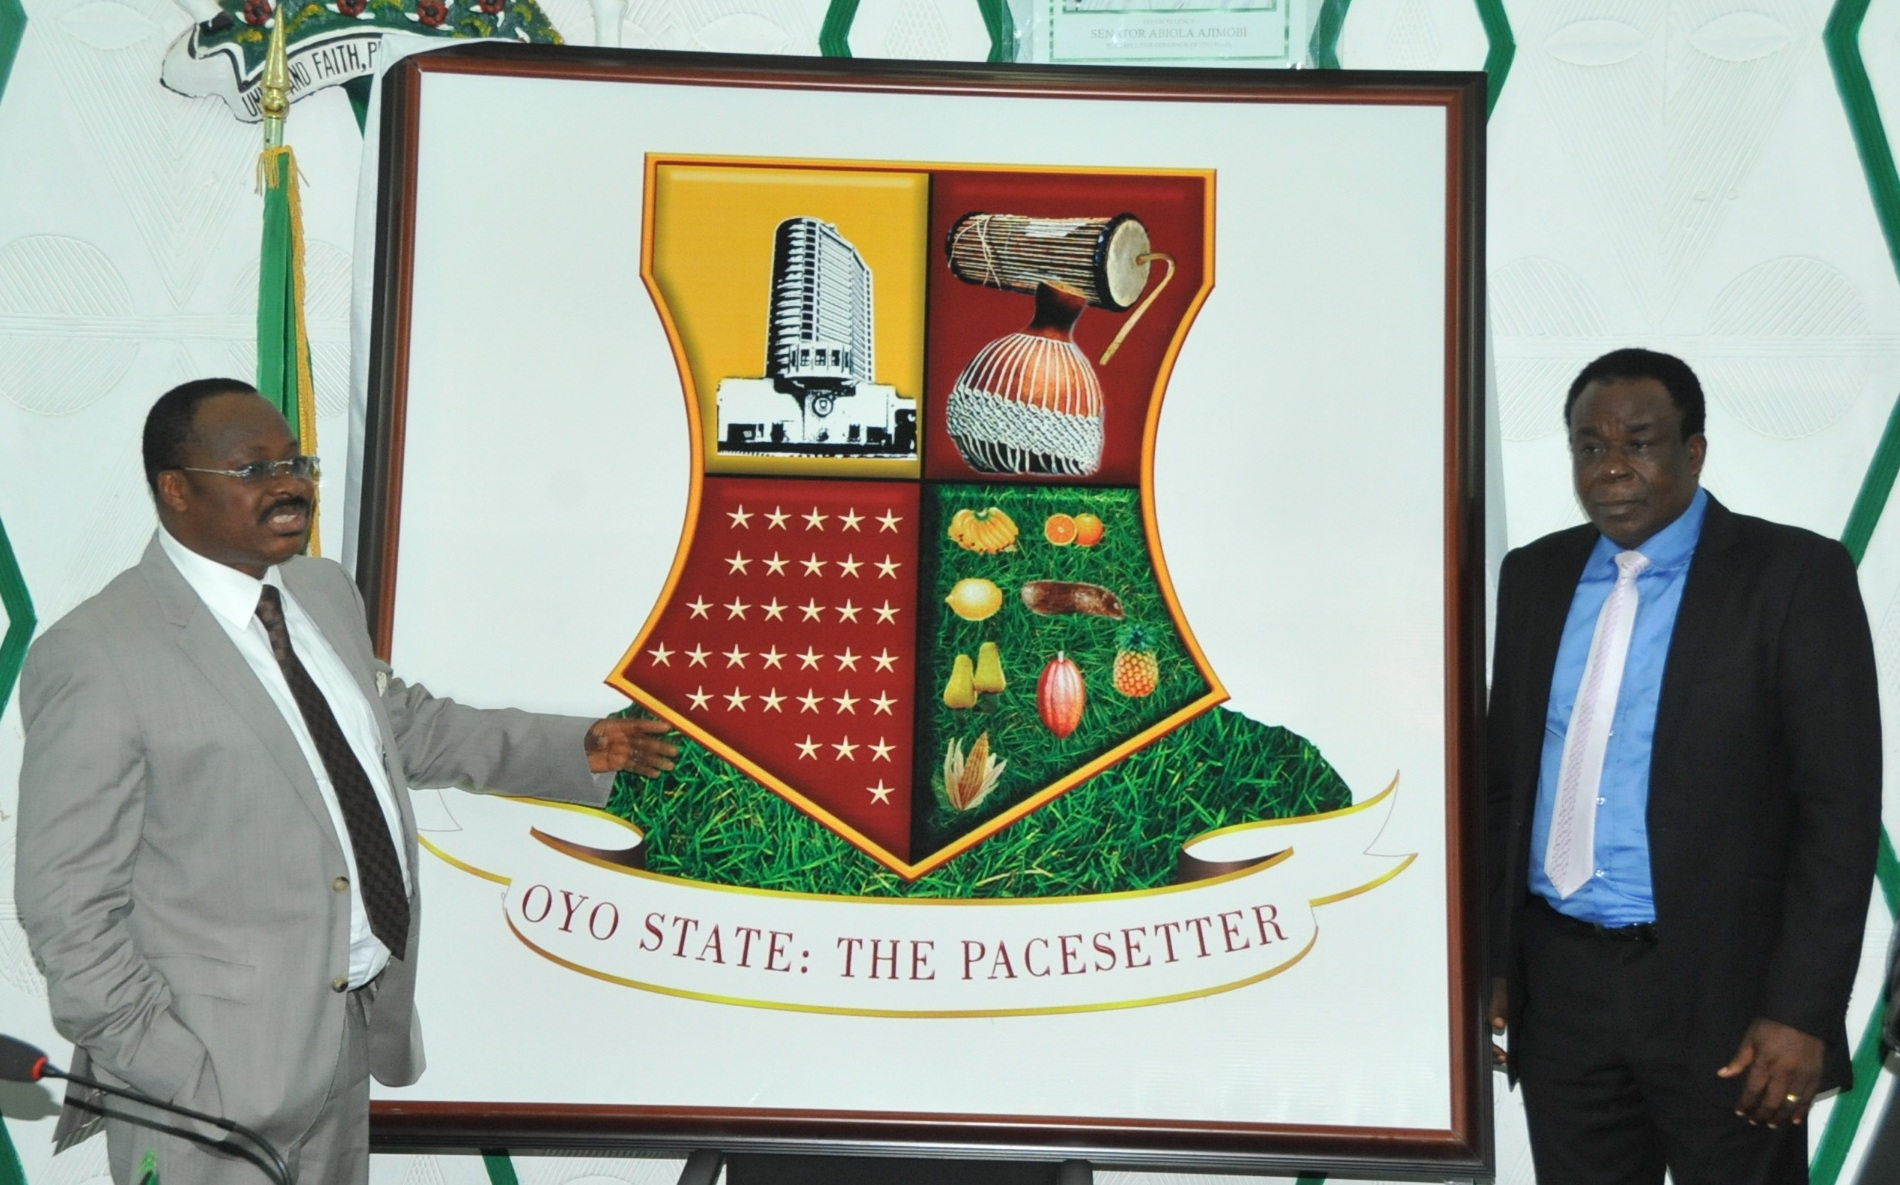 Oyo state gets new logo